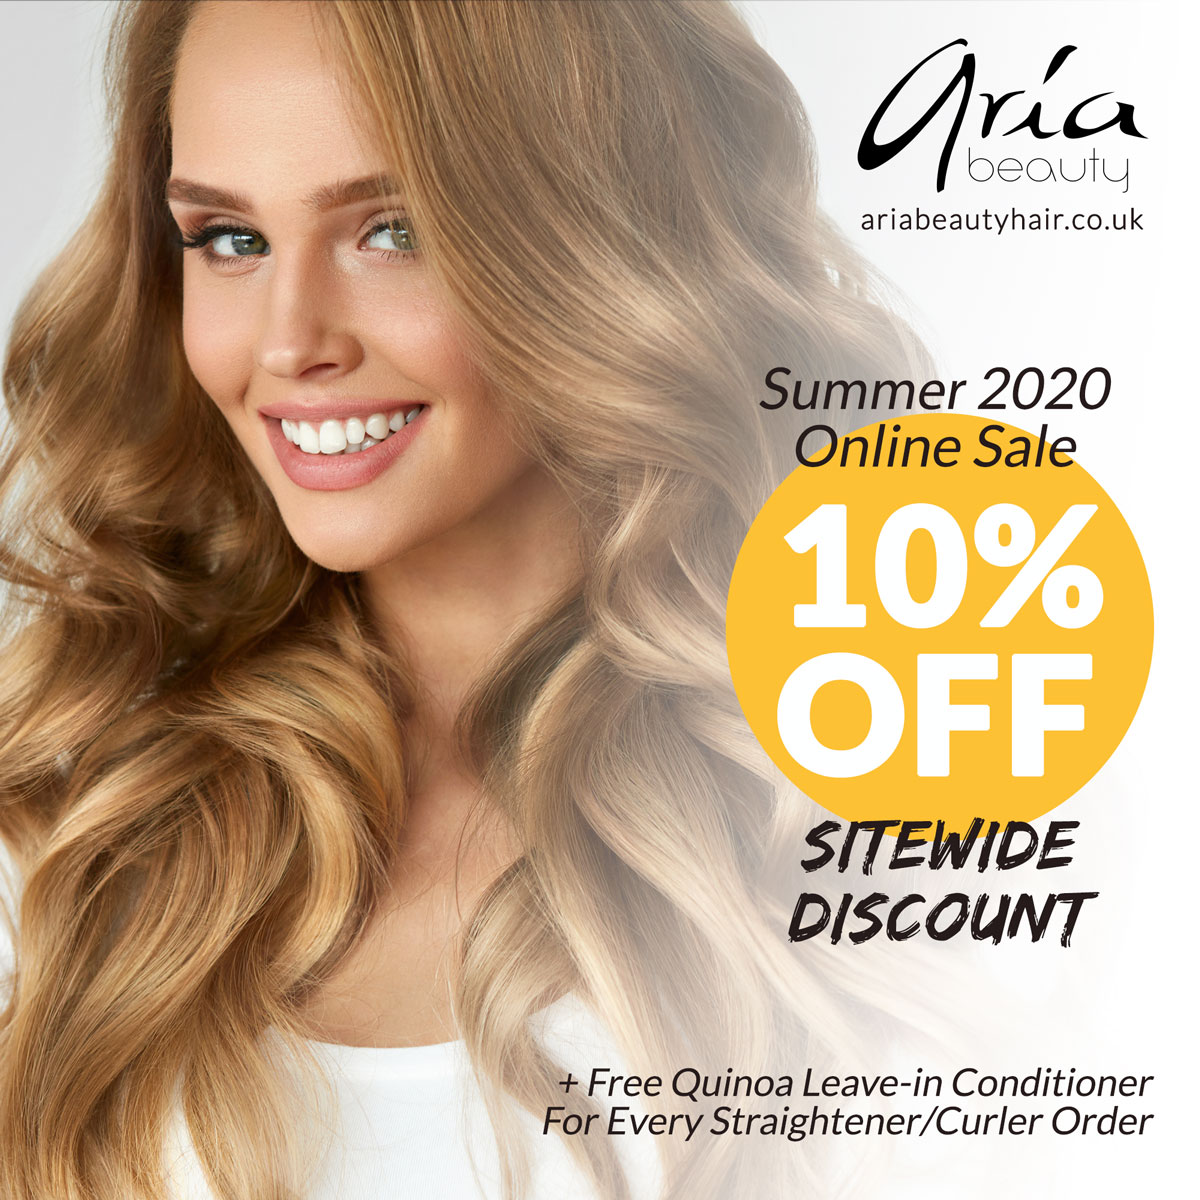 Summer 2020 Online Sale on Aria Beauty Europe